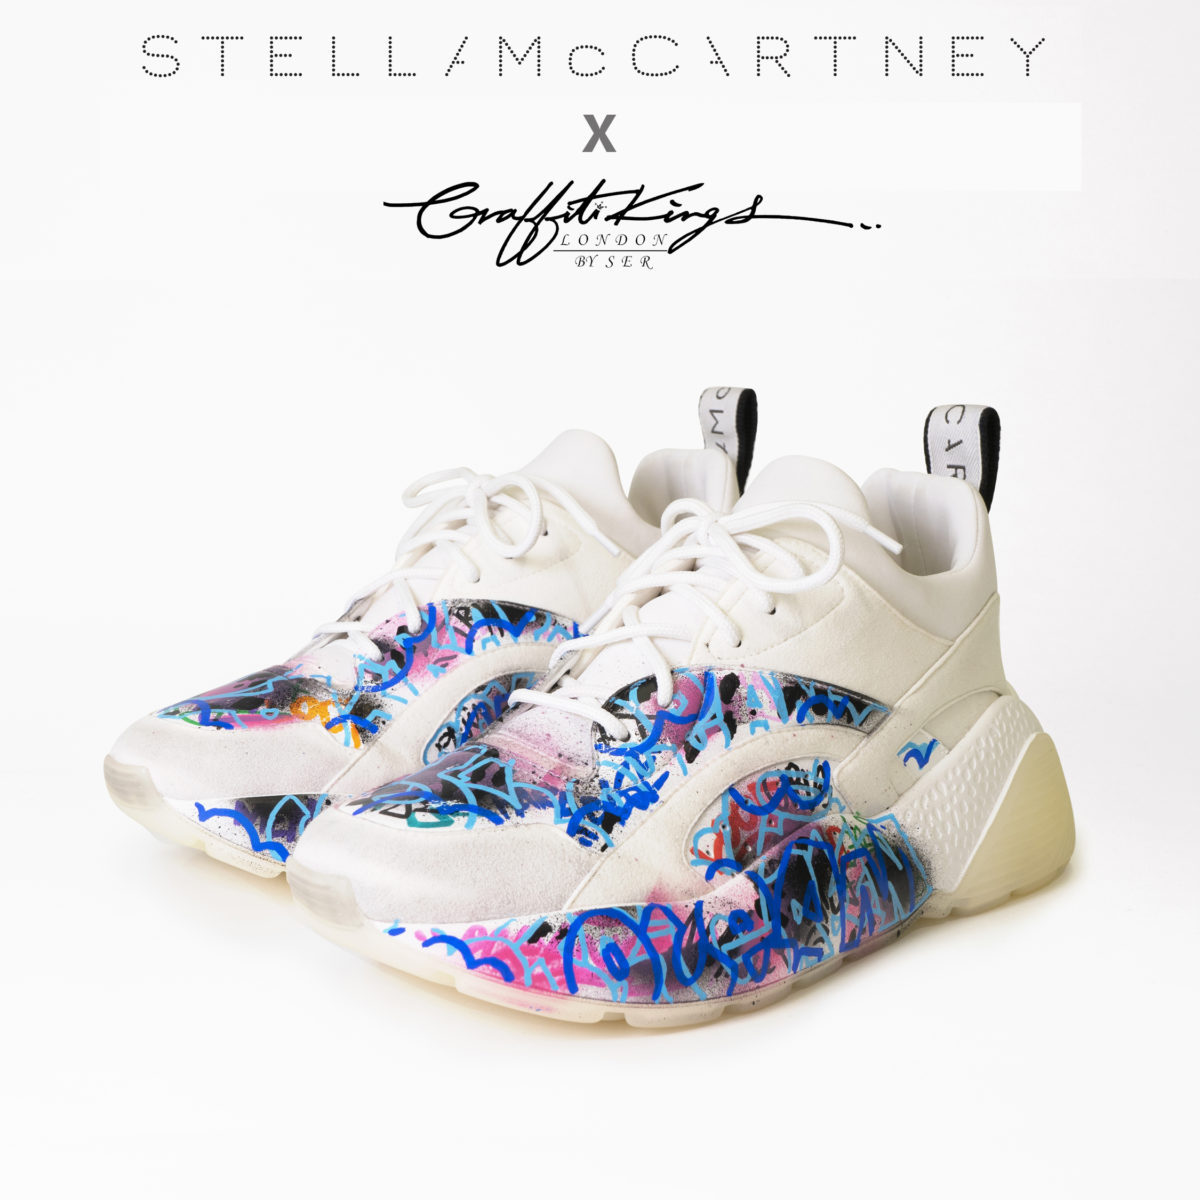 Stella McCartney x Graffiti Kings Custom Sneakers Trainers 4